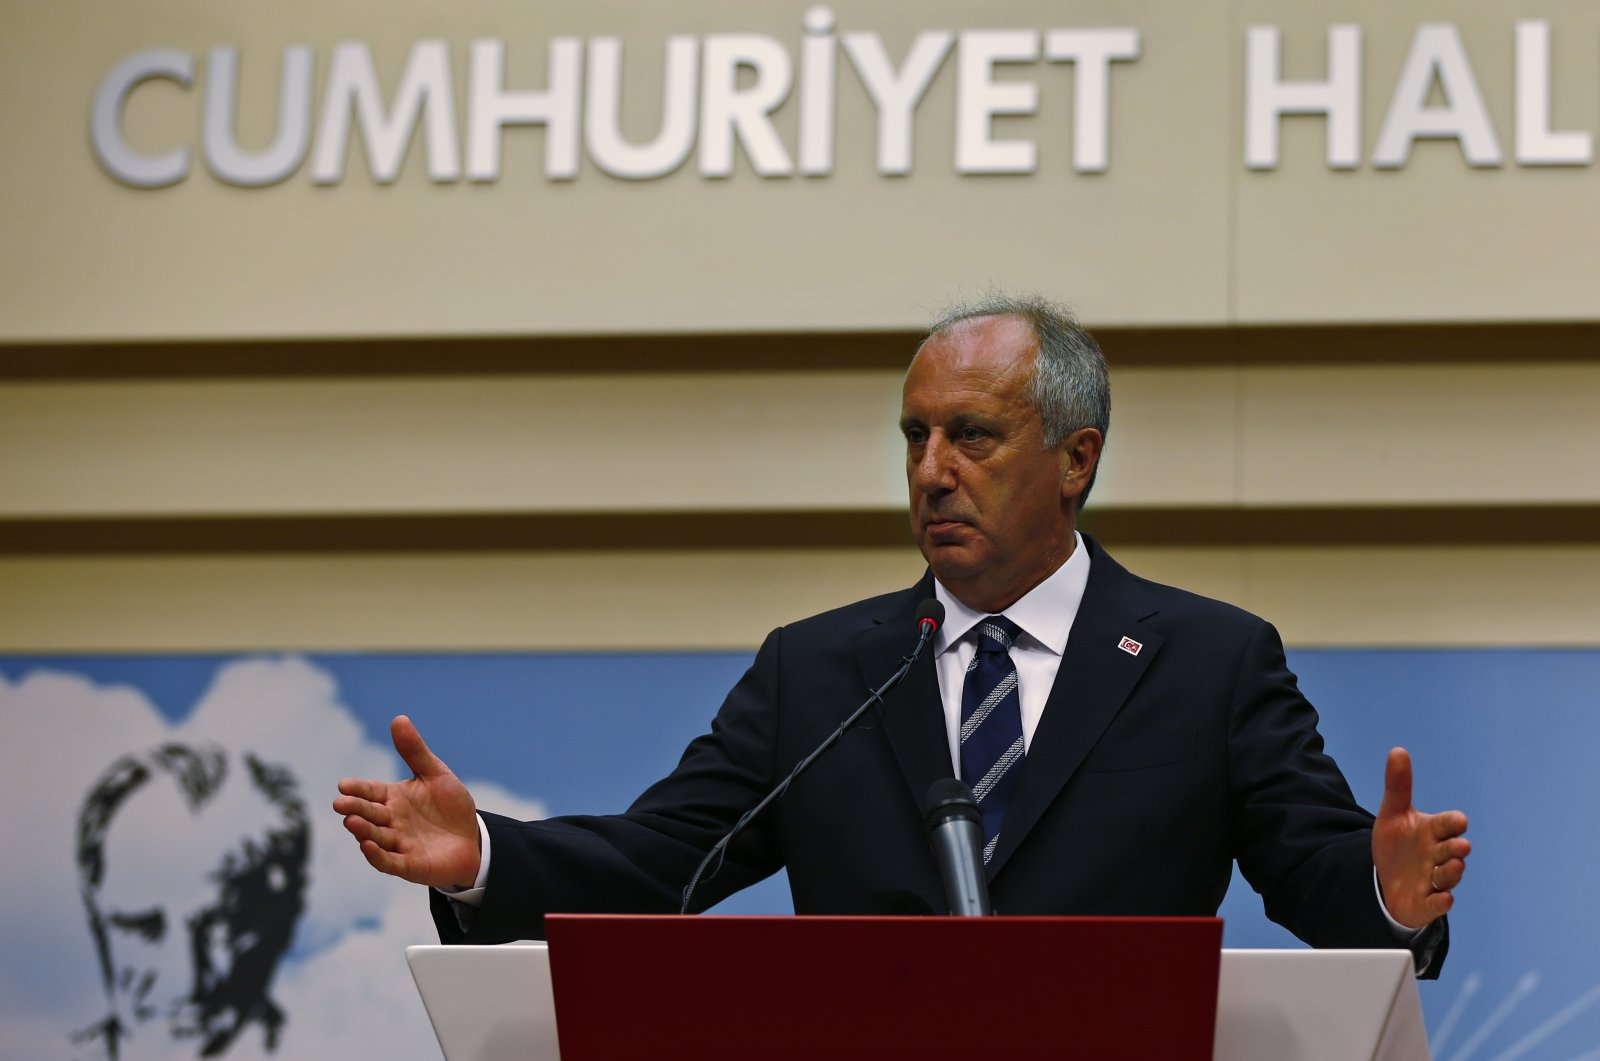 A day after the elections, Muharrem Ince, the candidate of Turkey's main opposition Republican People's Party, pauses during a news conference in the capital Ankara, Turkey, June 25, 2018. (AP File Photo)